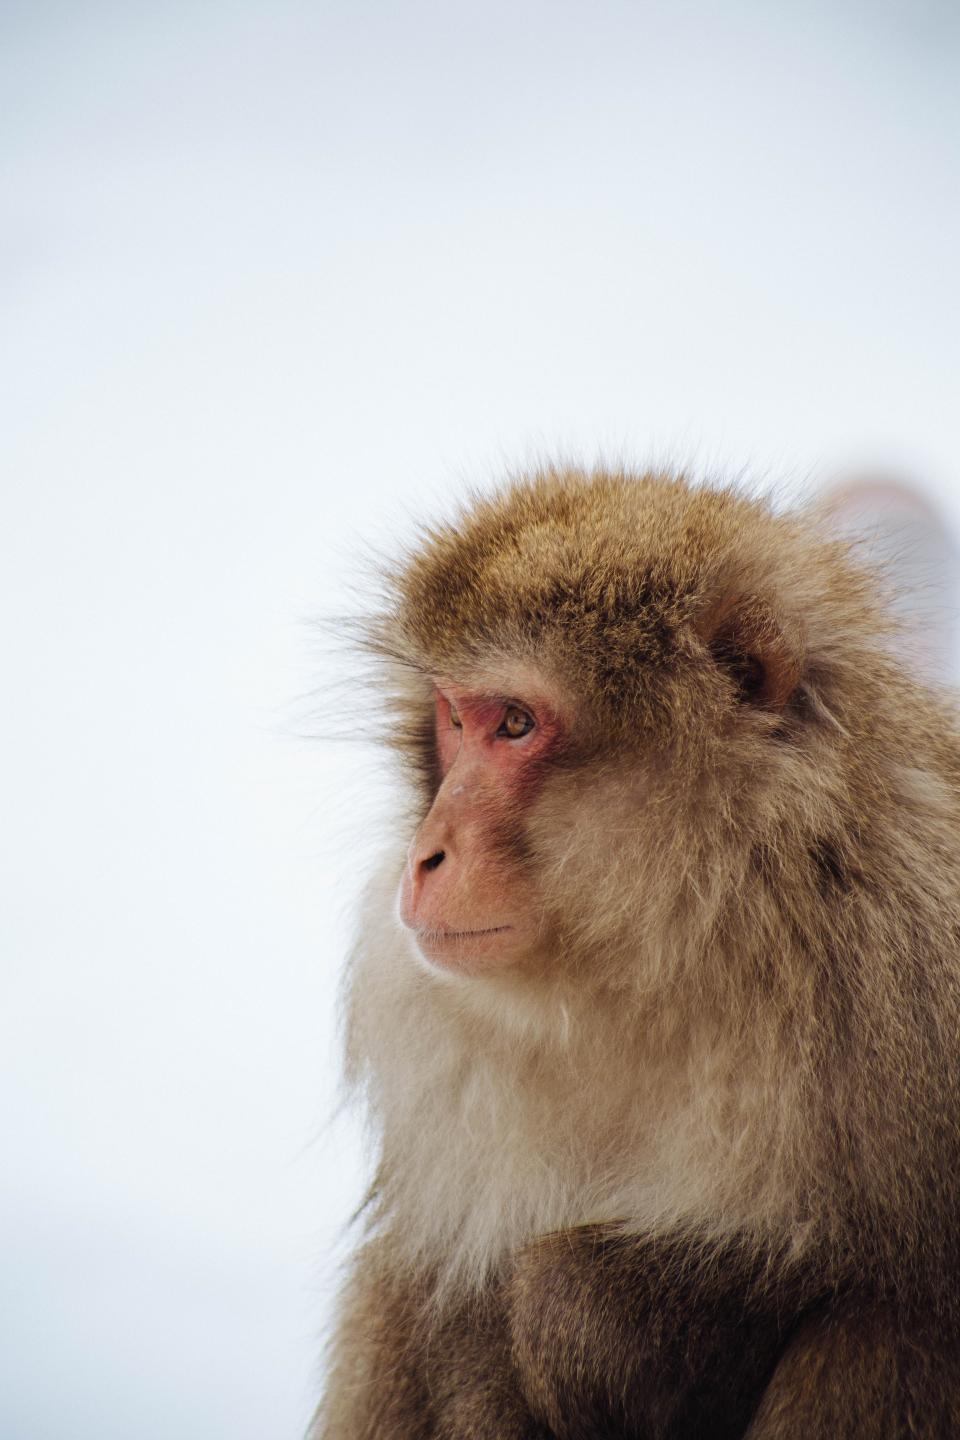 animal monkey fur wildlife bokeh blur